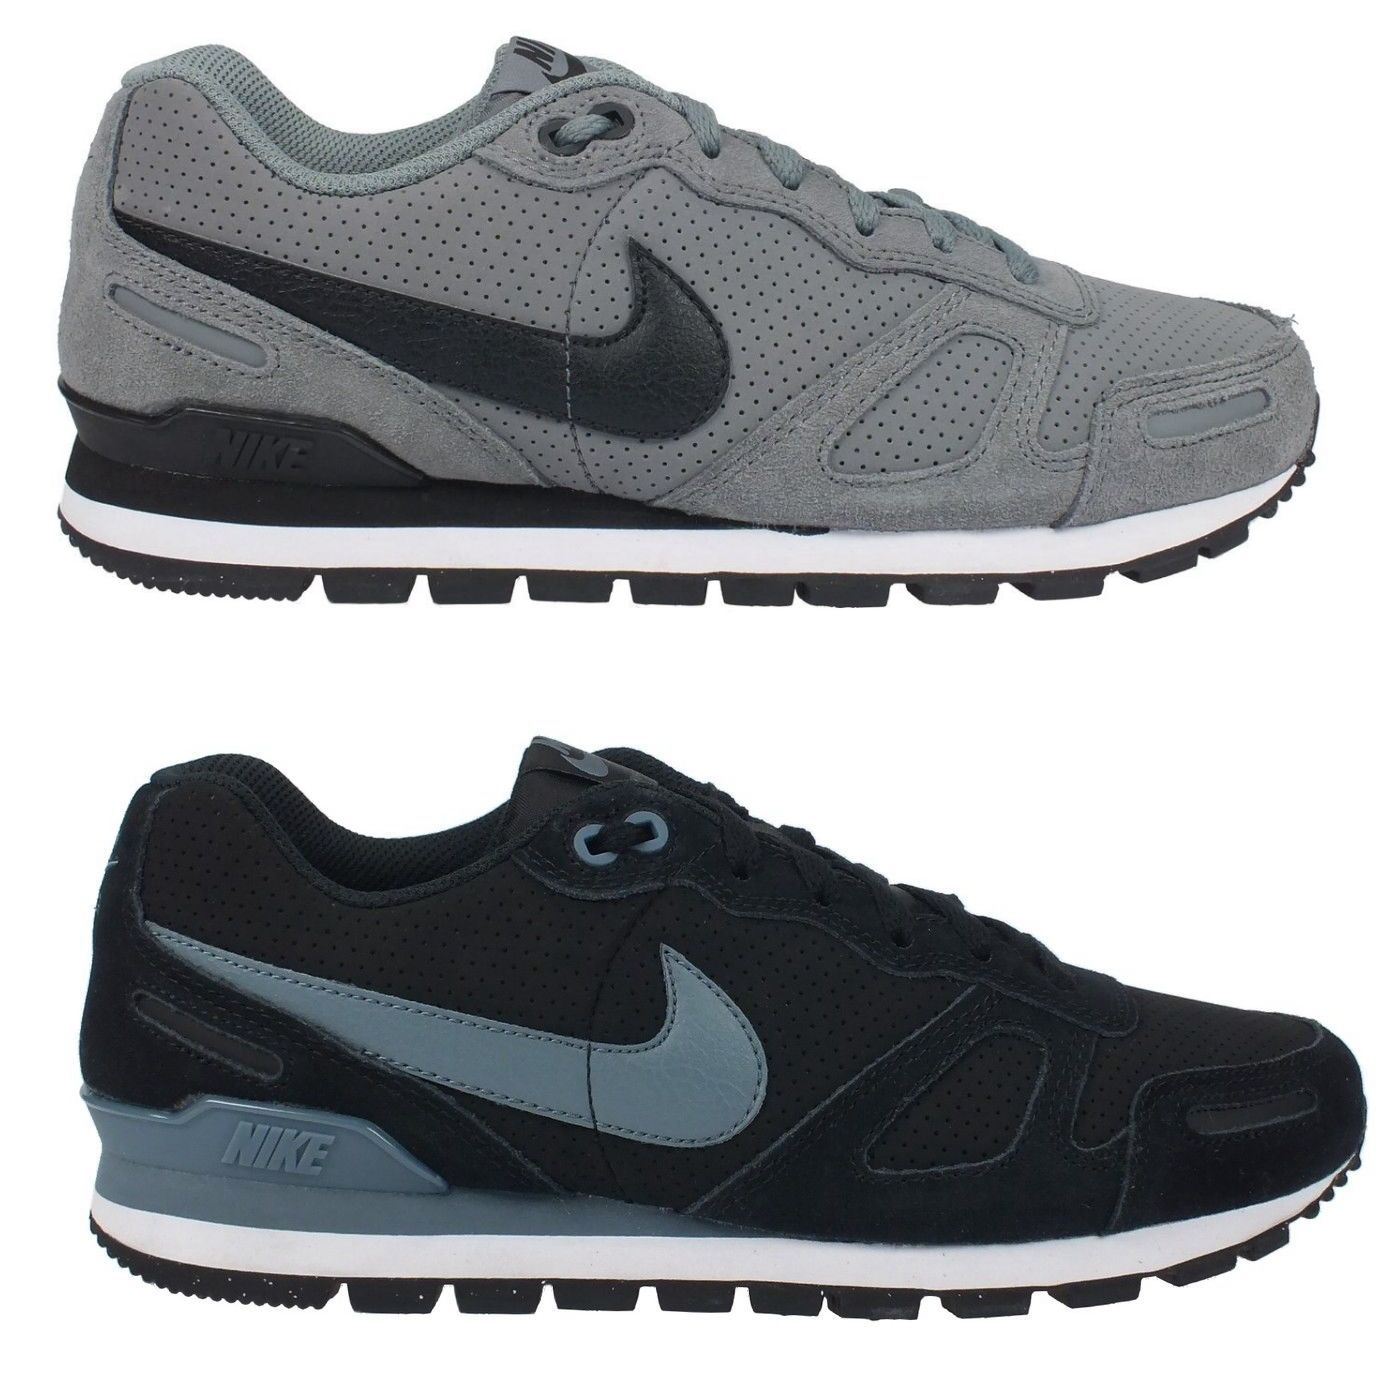 nike air waffle trainer leather men 39 s trainers shoes. Black Bedroom Furniture Sets. Home Design Ideas